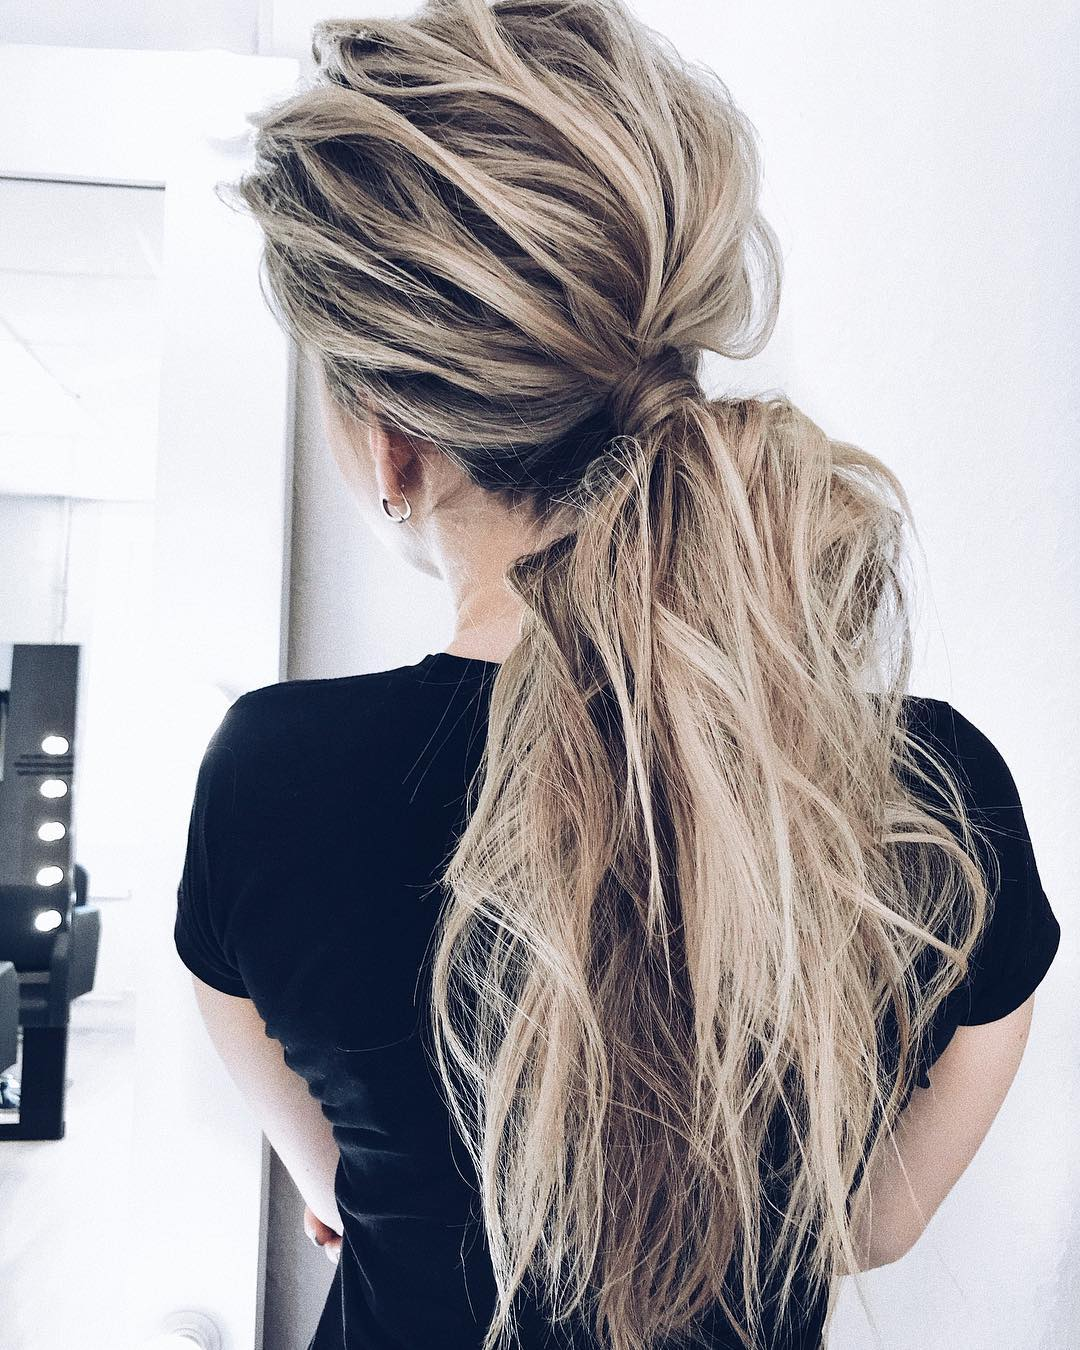 best-super-cute-and-cool-ponytail-hairstyles-long-hair-styles-ideas